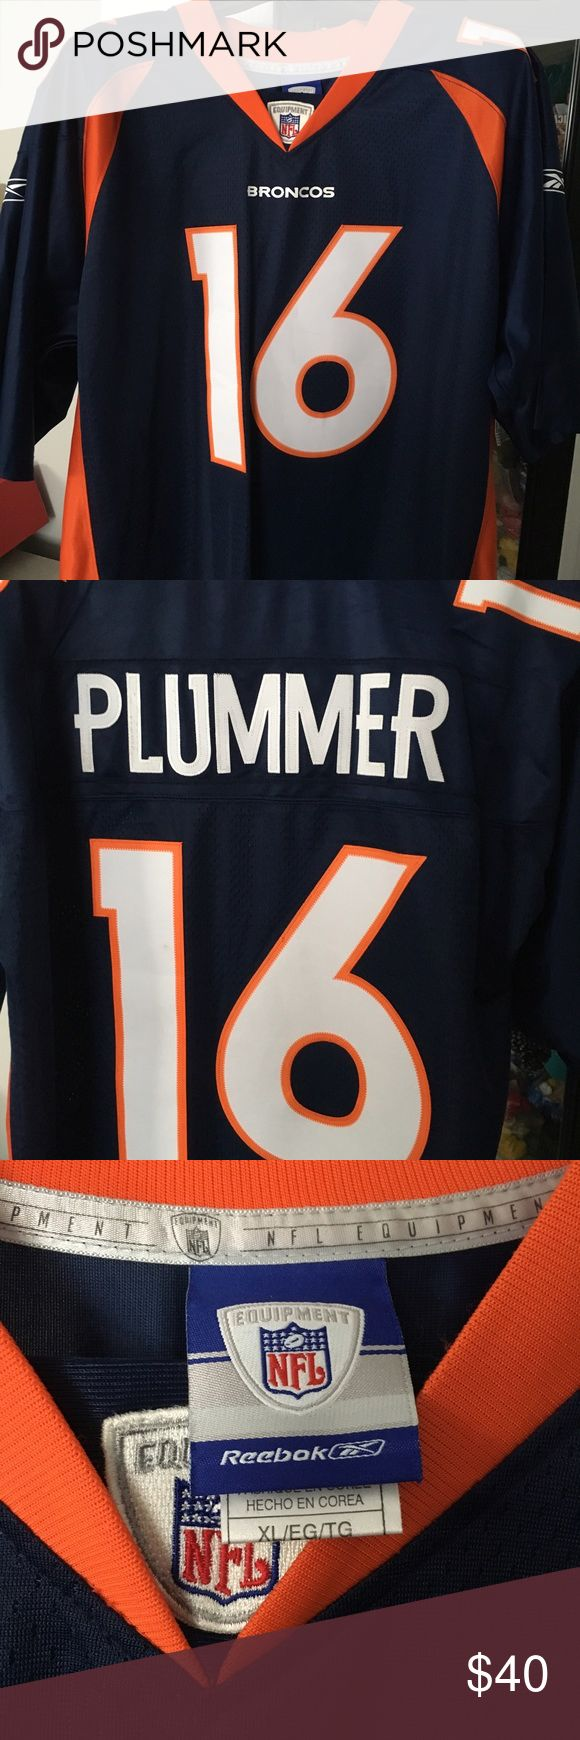 Official NFL Broncos Jersey - Jake Plummer Gently used Official NFL mid-00s Broncos jersey. Add to your collection today! Slight discoloration on edge of the 1 and the PL - close-up in photos. Shirts